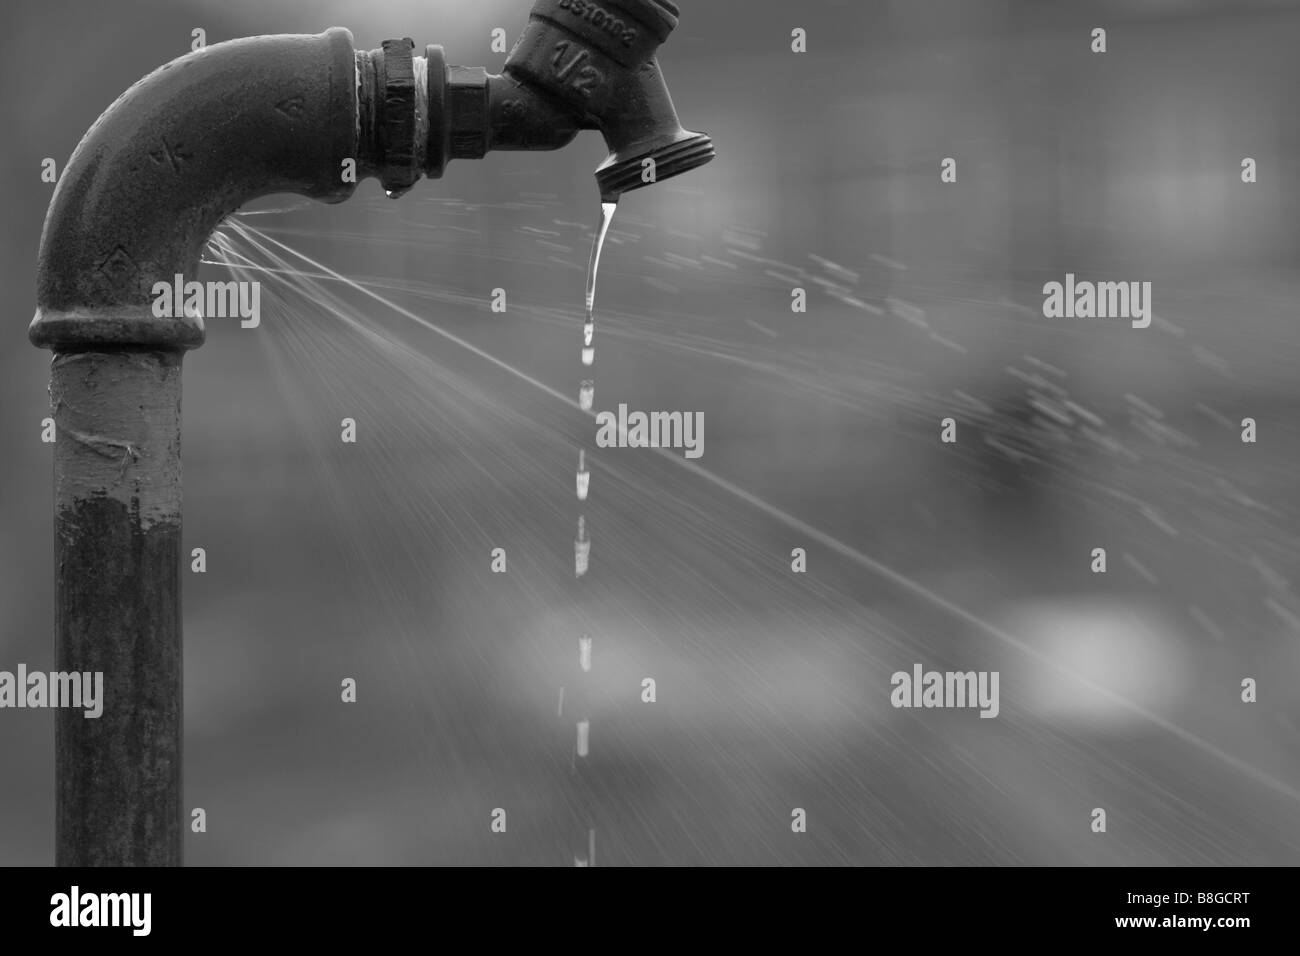 A leaky outside faucet Stock Photo, Royalty Free Image: 22488924 - Alamy